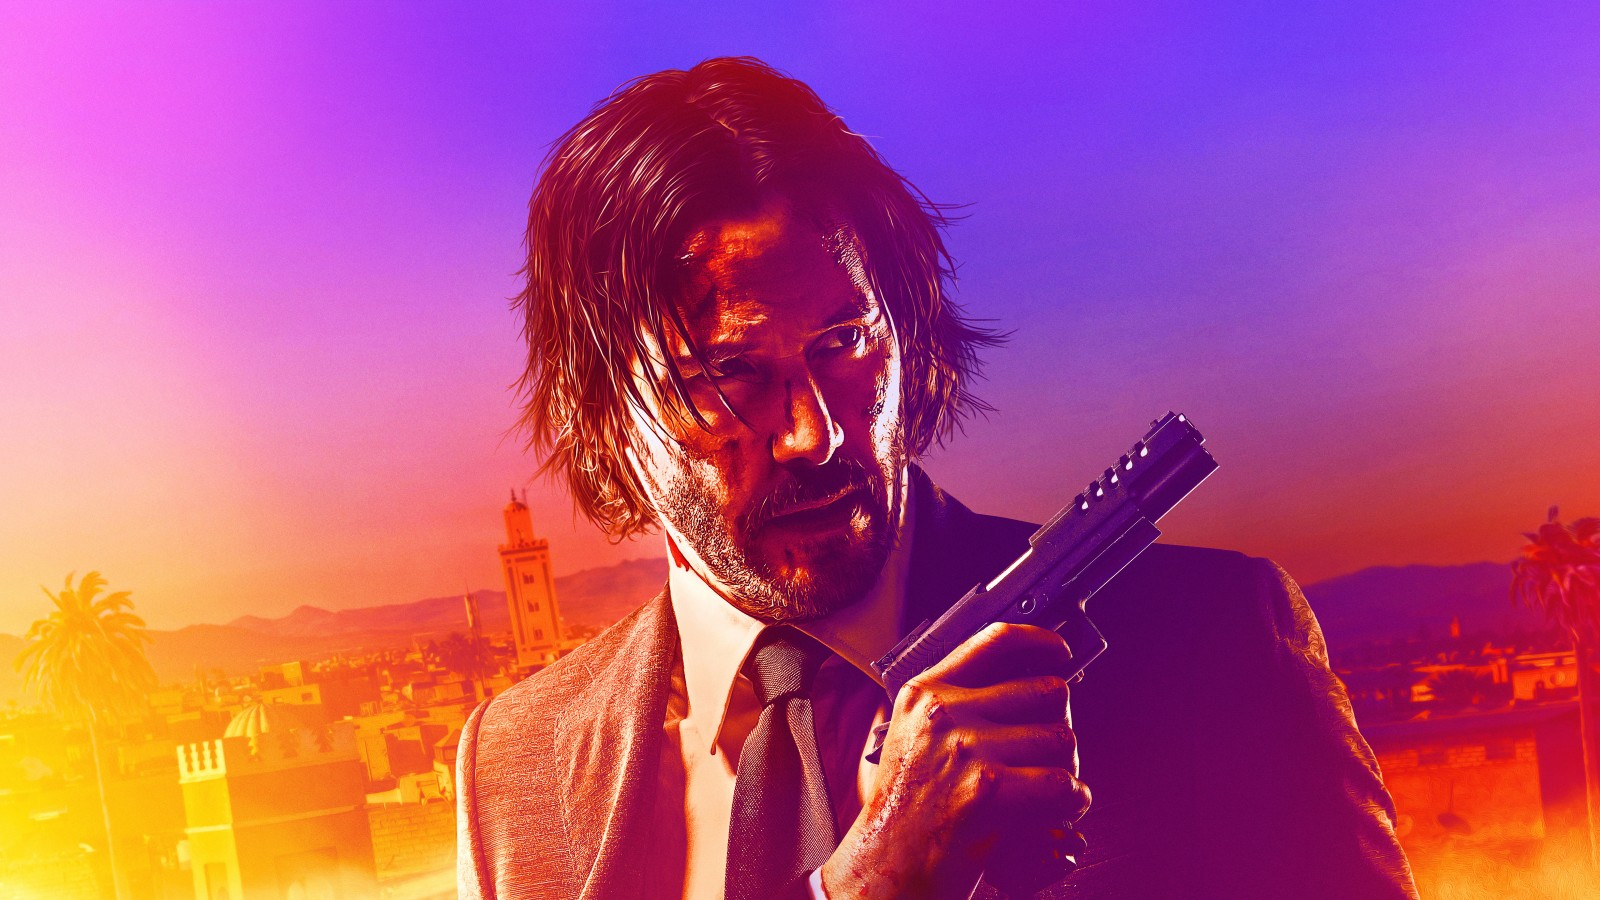 Hd Android Wallpapers 3d Keanu Reeves In John Wick Chapter 3 Parabellum 4k 8k